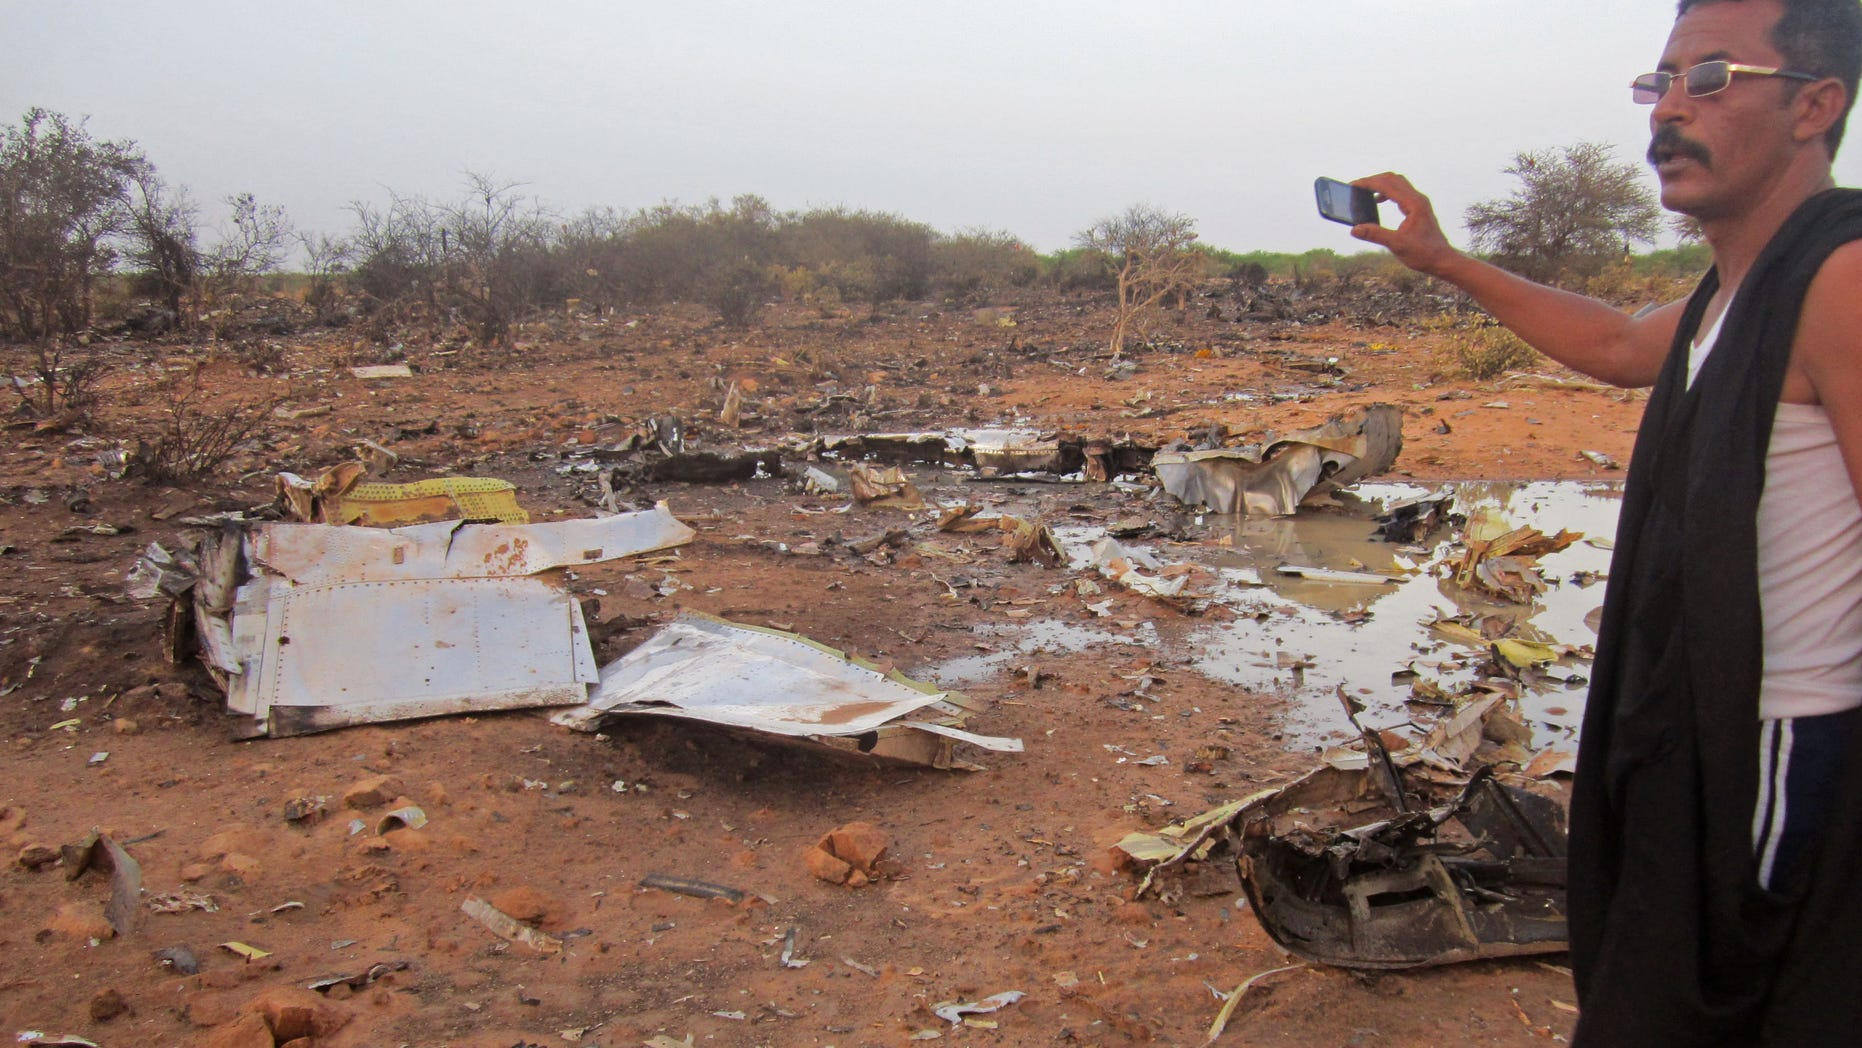 July 25, 2014 - French soldiers secured a black box from the Air Algerie wreckage site in a desolate region of restive northern Mali. The French president said terrorism hasn't been ruled out as a cause, although officials say the most likely reason for the catastrophe that killed all onboard is bad weather. At least 118 people were killed in the disaster, nearly half of whom were French.  (Burkina Faso military)